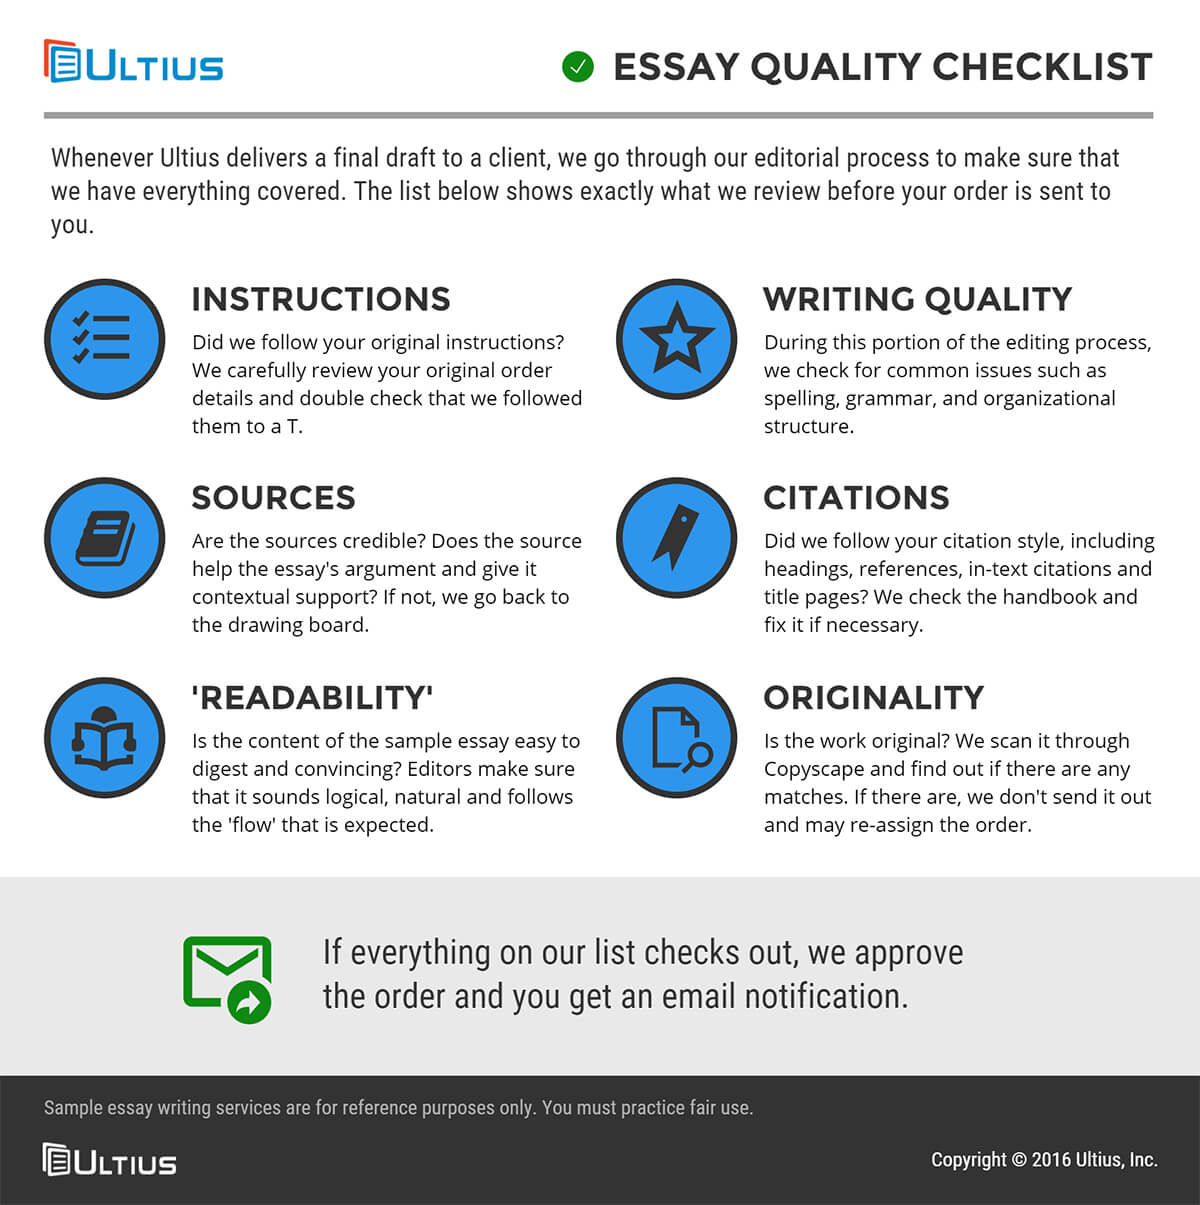 001 Essay Example Quality Checklist Buy Sensational Online Safe Reviews Login Full